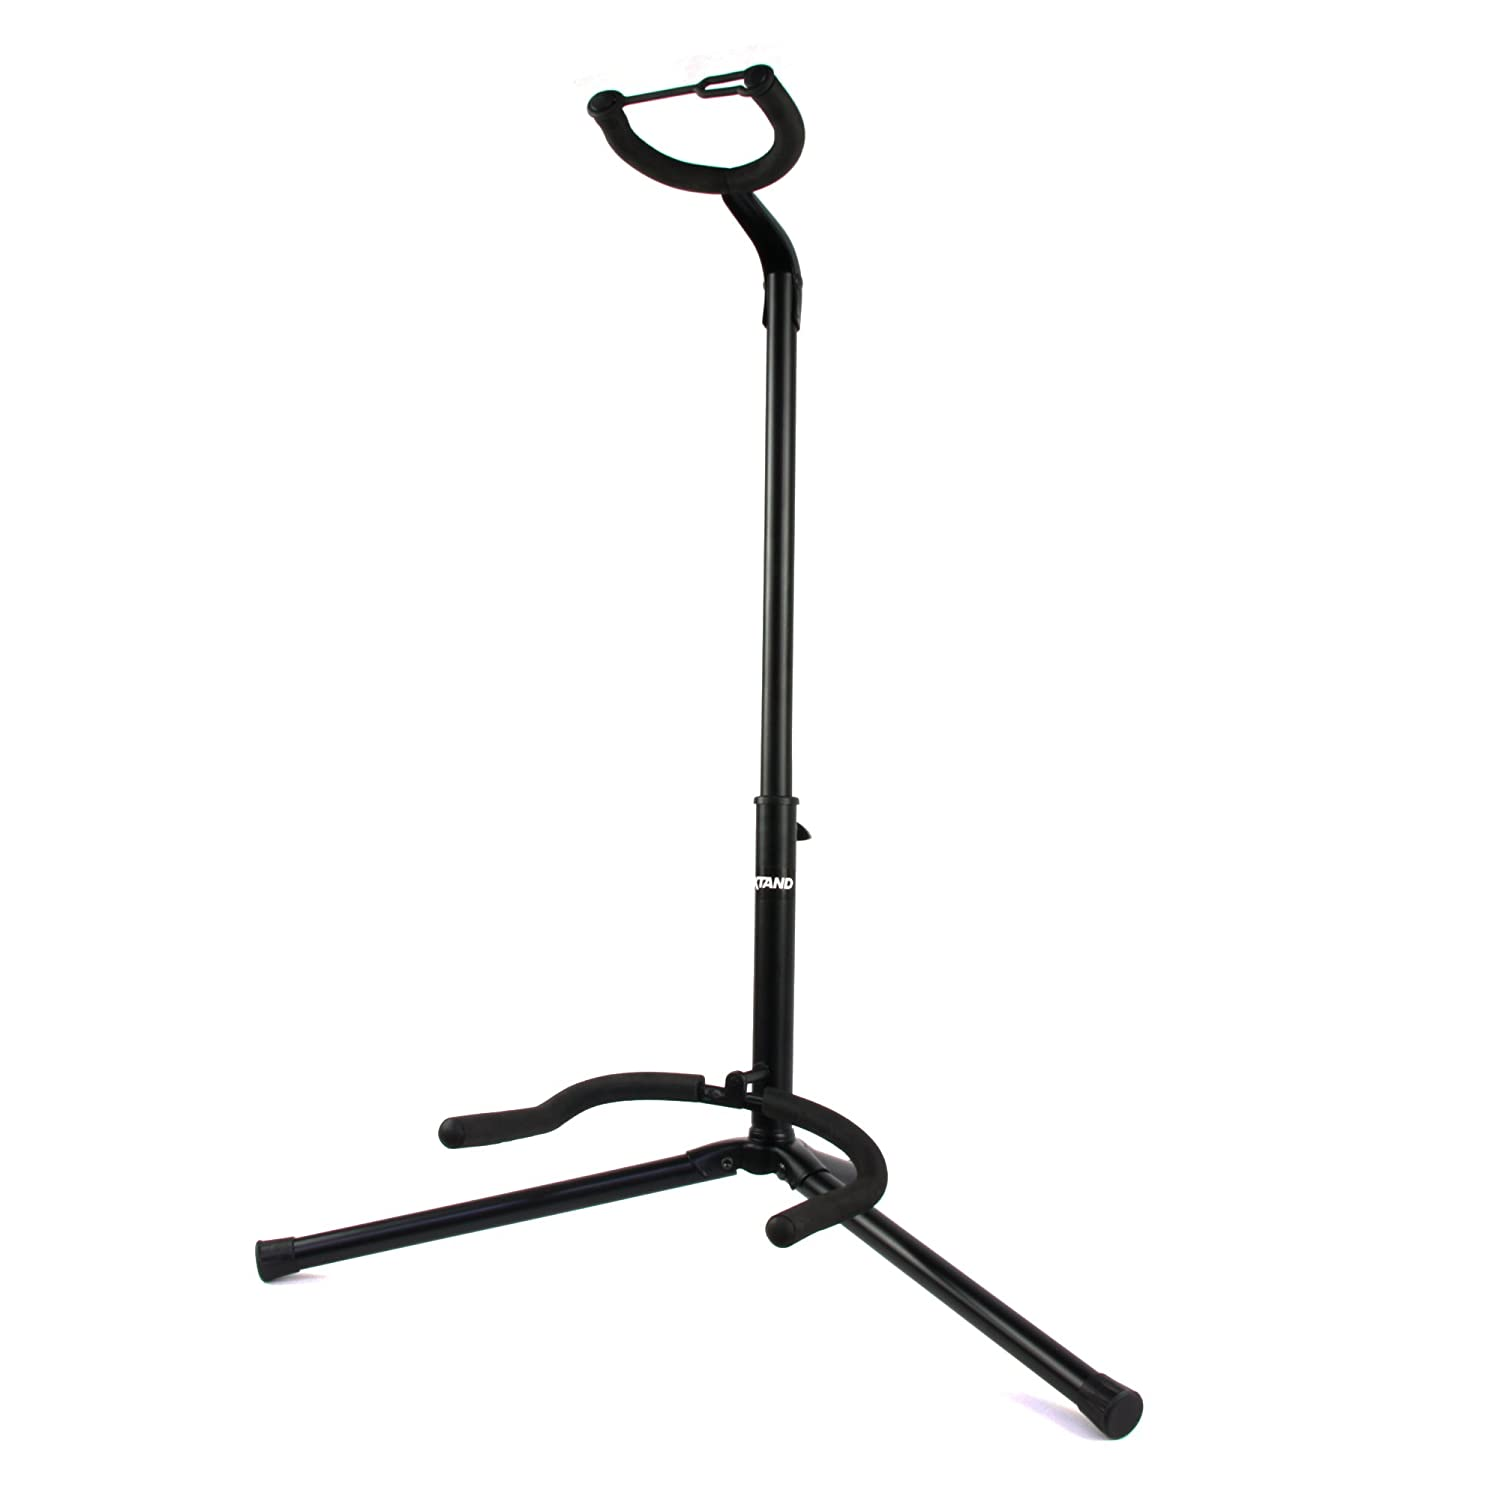 Guitar Stand for Acoustic, Electric, Bass Guitars – Black Single Tripod Stand by Axtand AX01